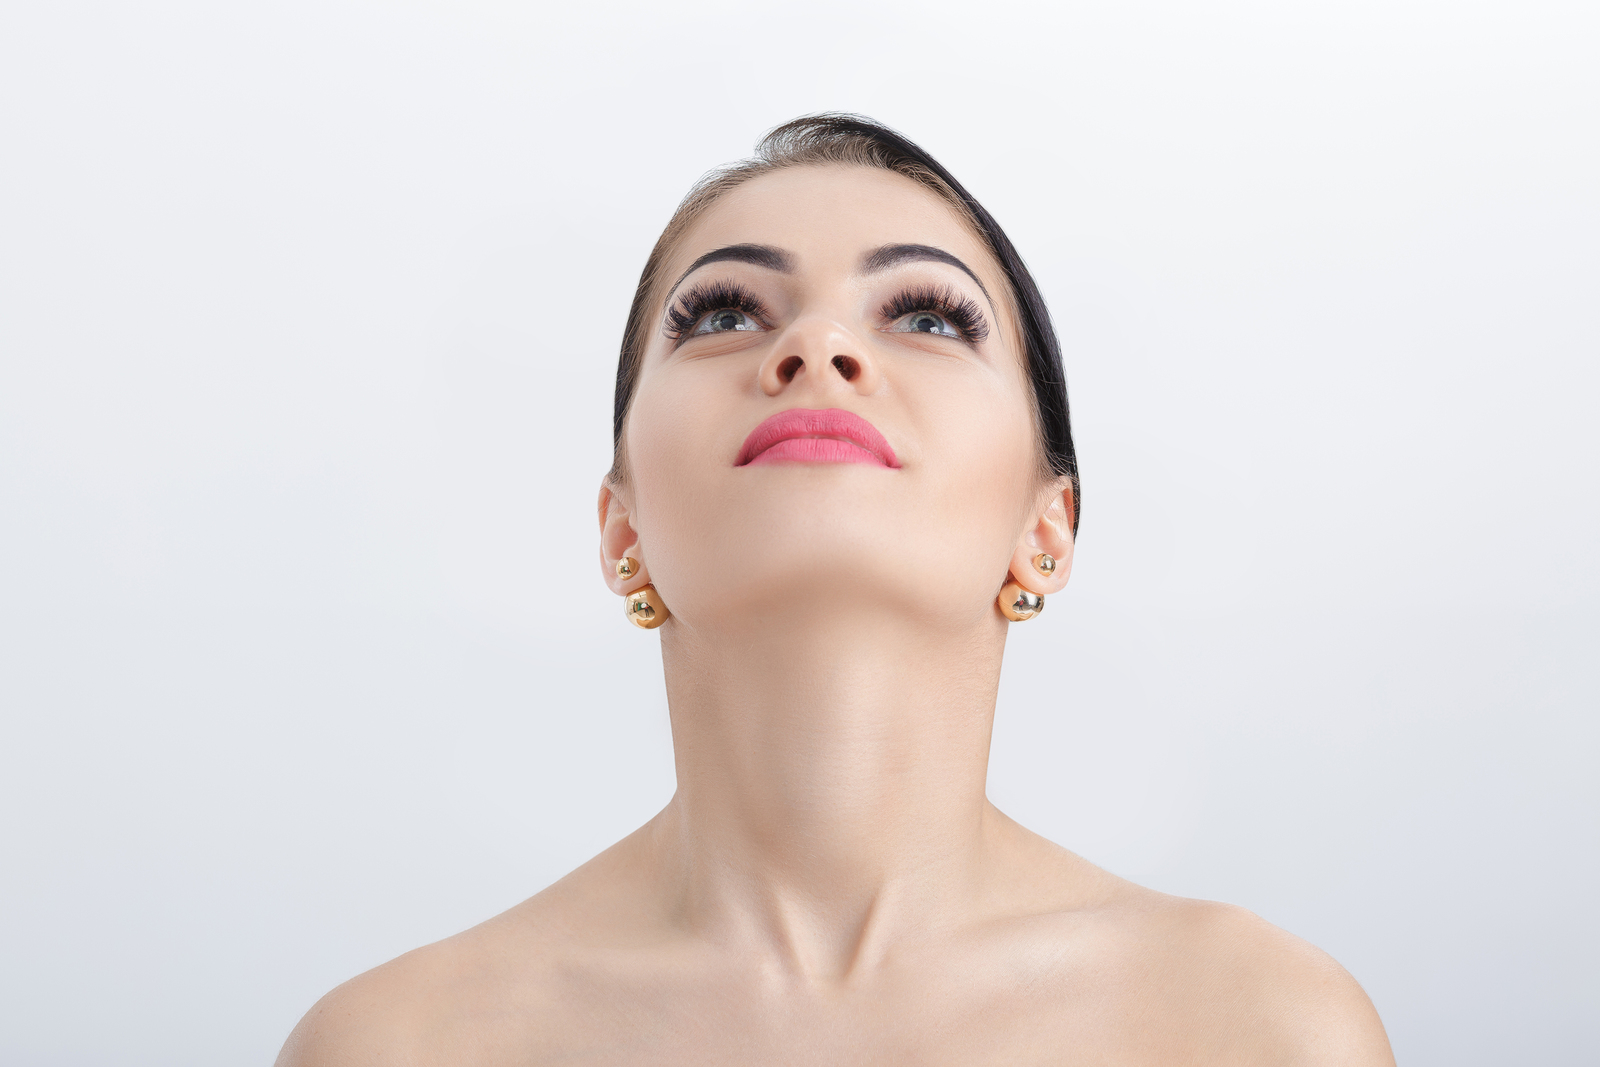 Frequently Asked Questions About Neck Lift Surgery